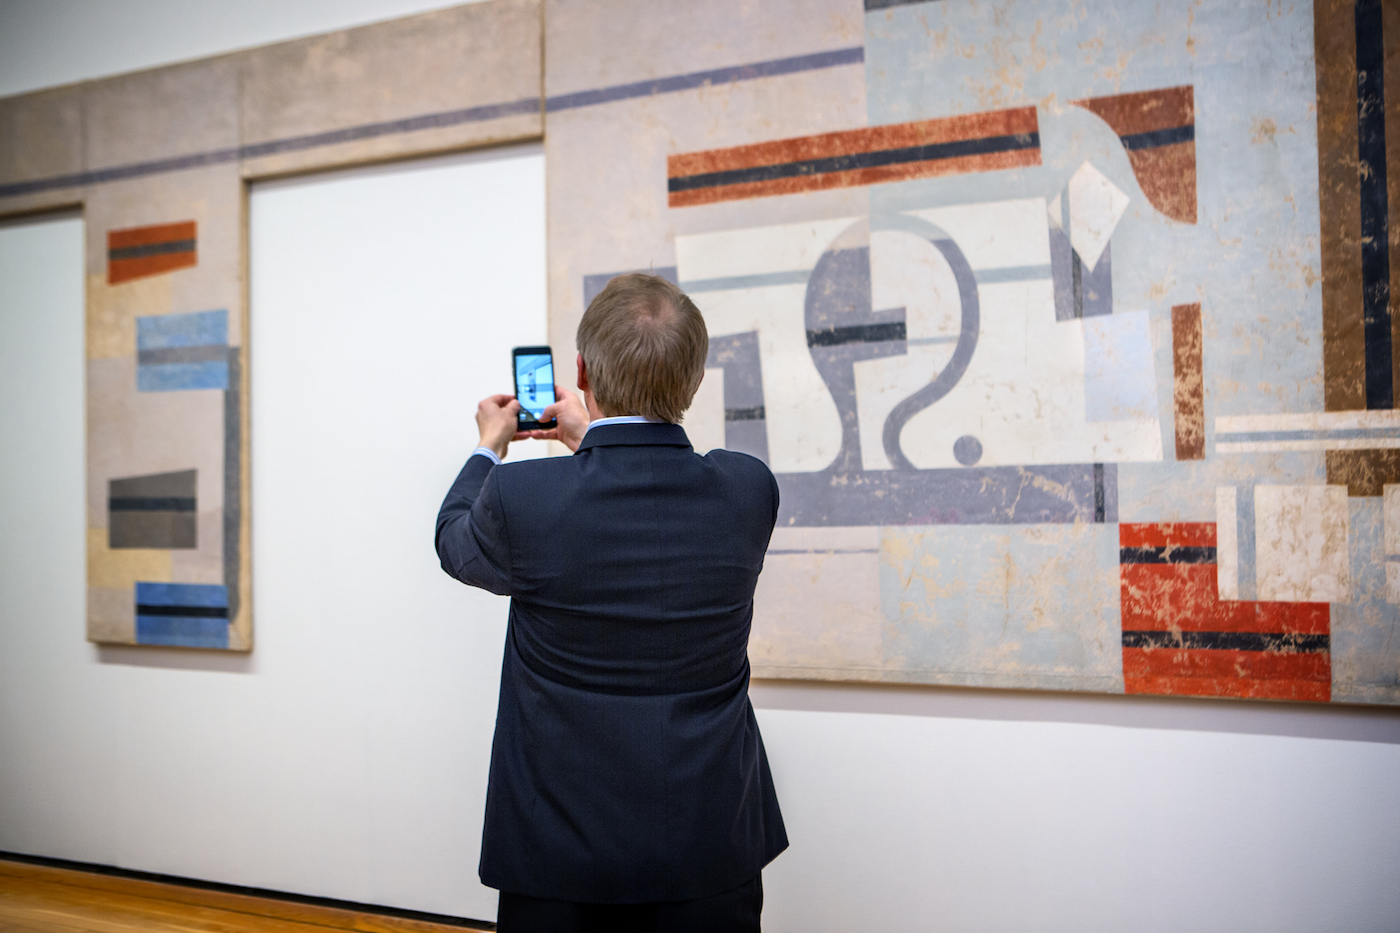 The 2016 Opening Reception for Spring Exhibitions at the Johnson Museum of Art (JMUS).